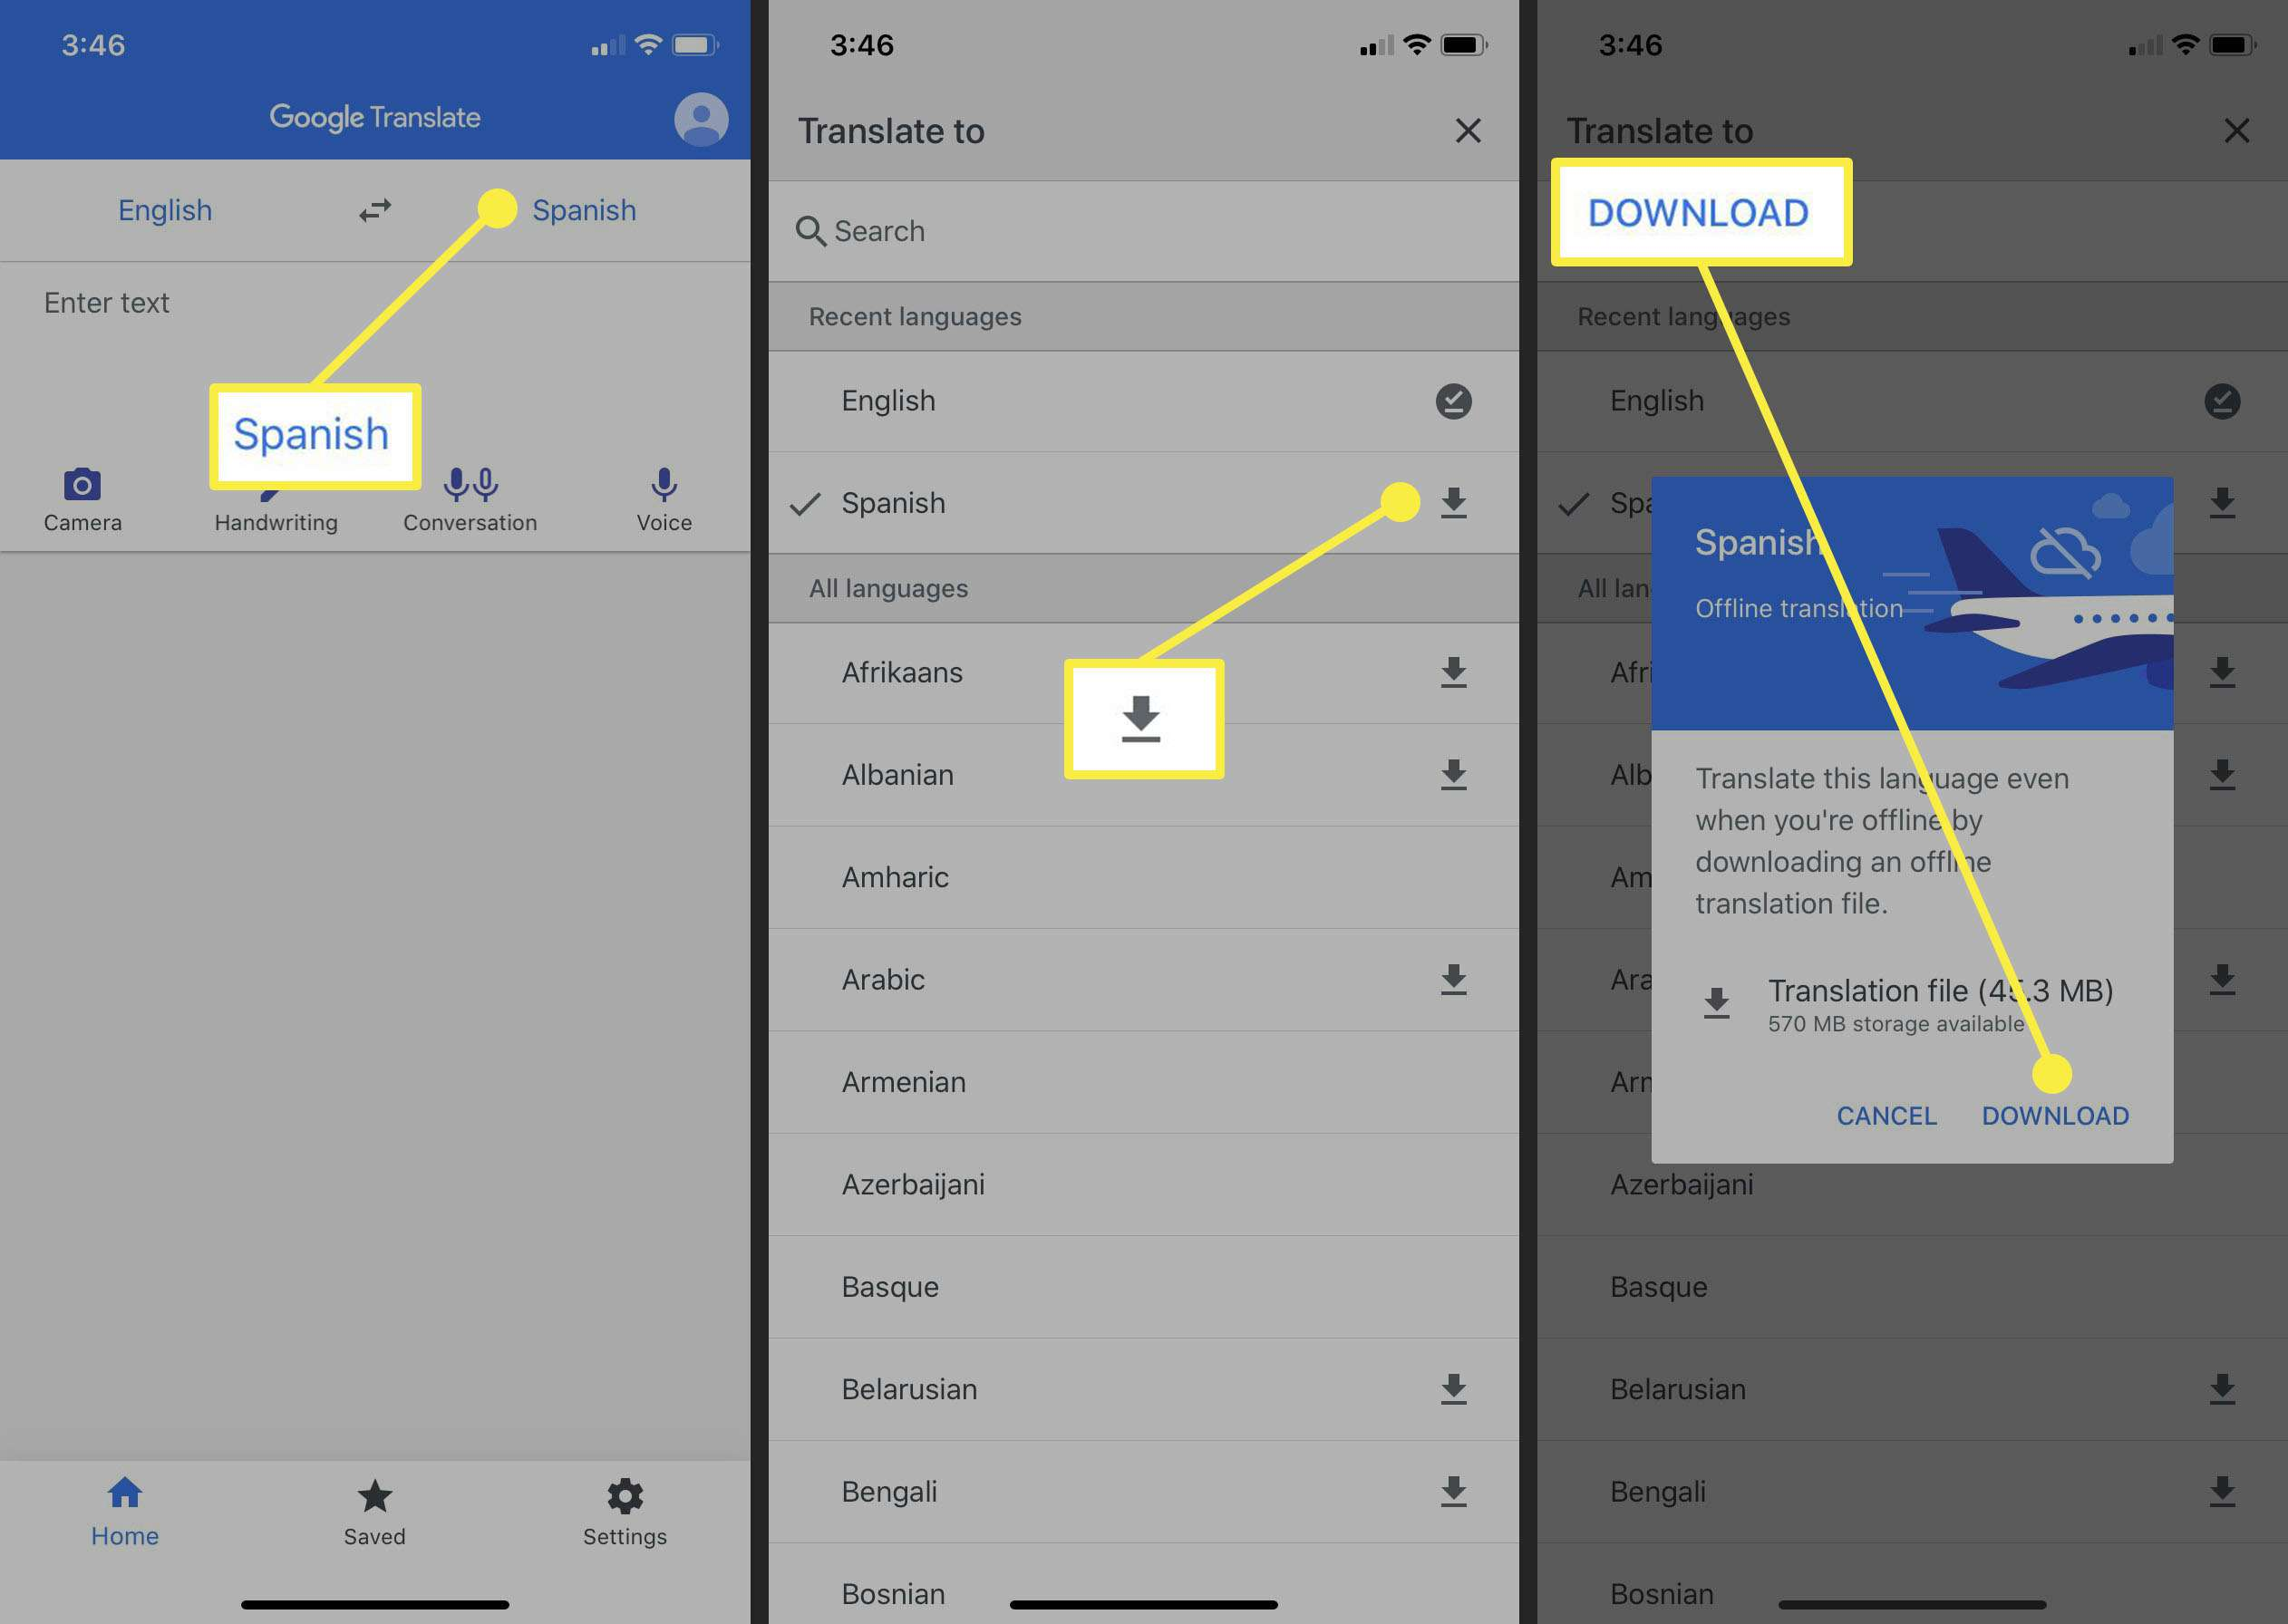 Steps to take to download a language for offline use in Google Translate.